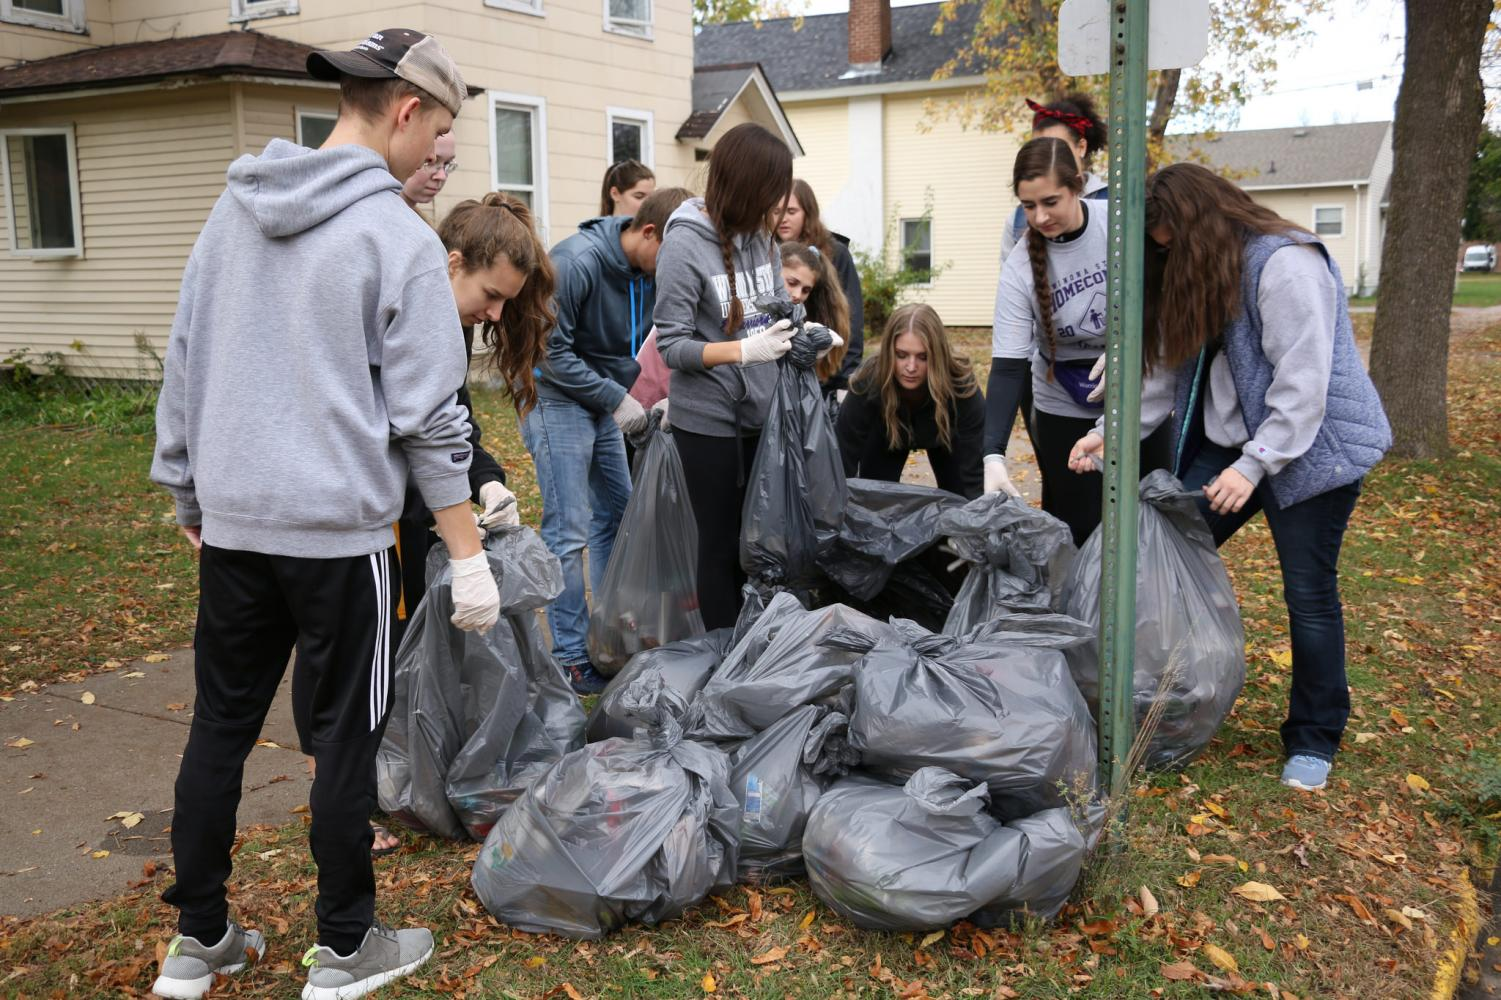 Student volunteers dropped off trash bags for pick-up following the Homecoming Weekend Clean Sweep on Sunday, Oct. 22.